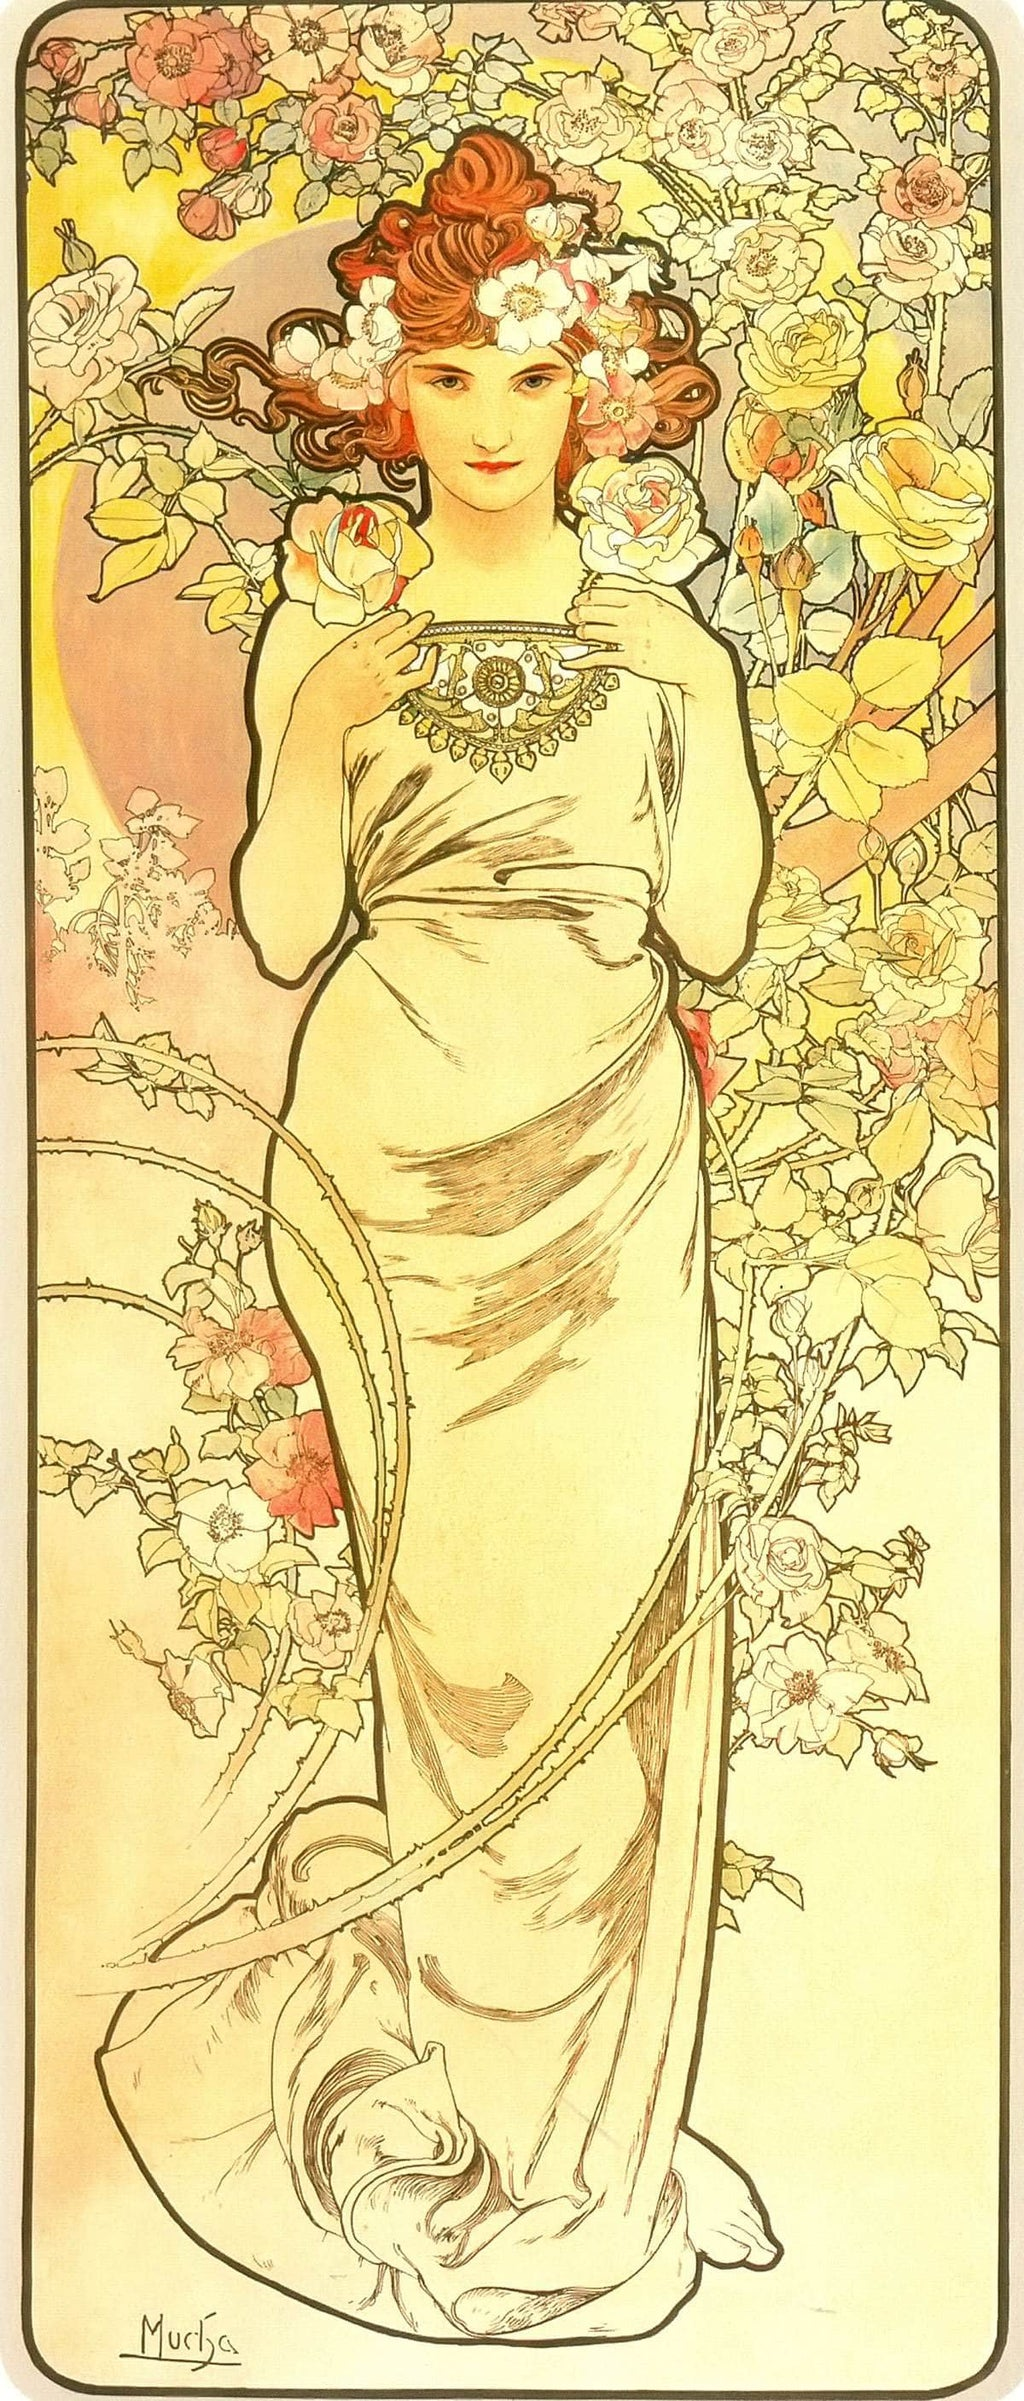 The Flowers Rose by Alphonse Mucha